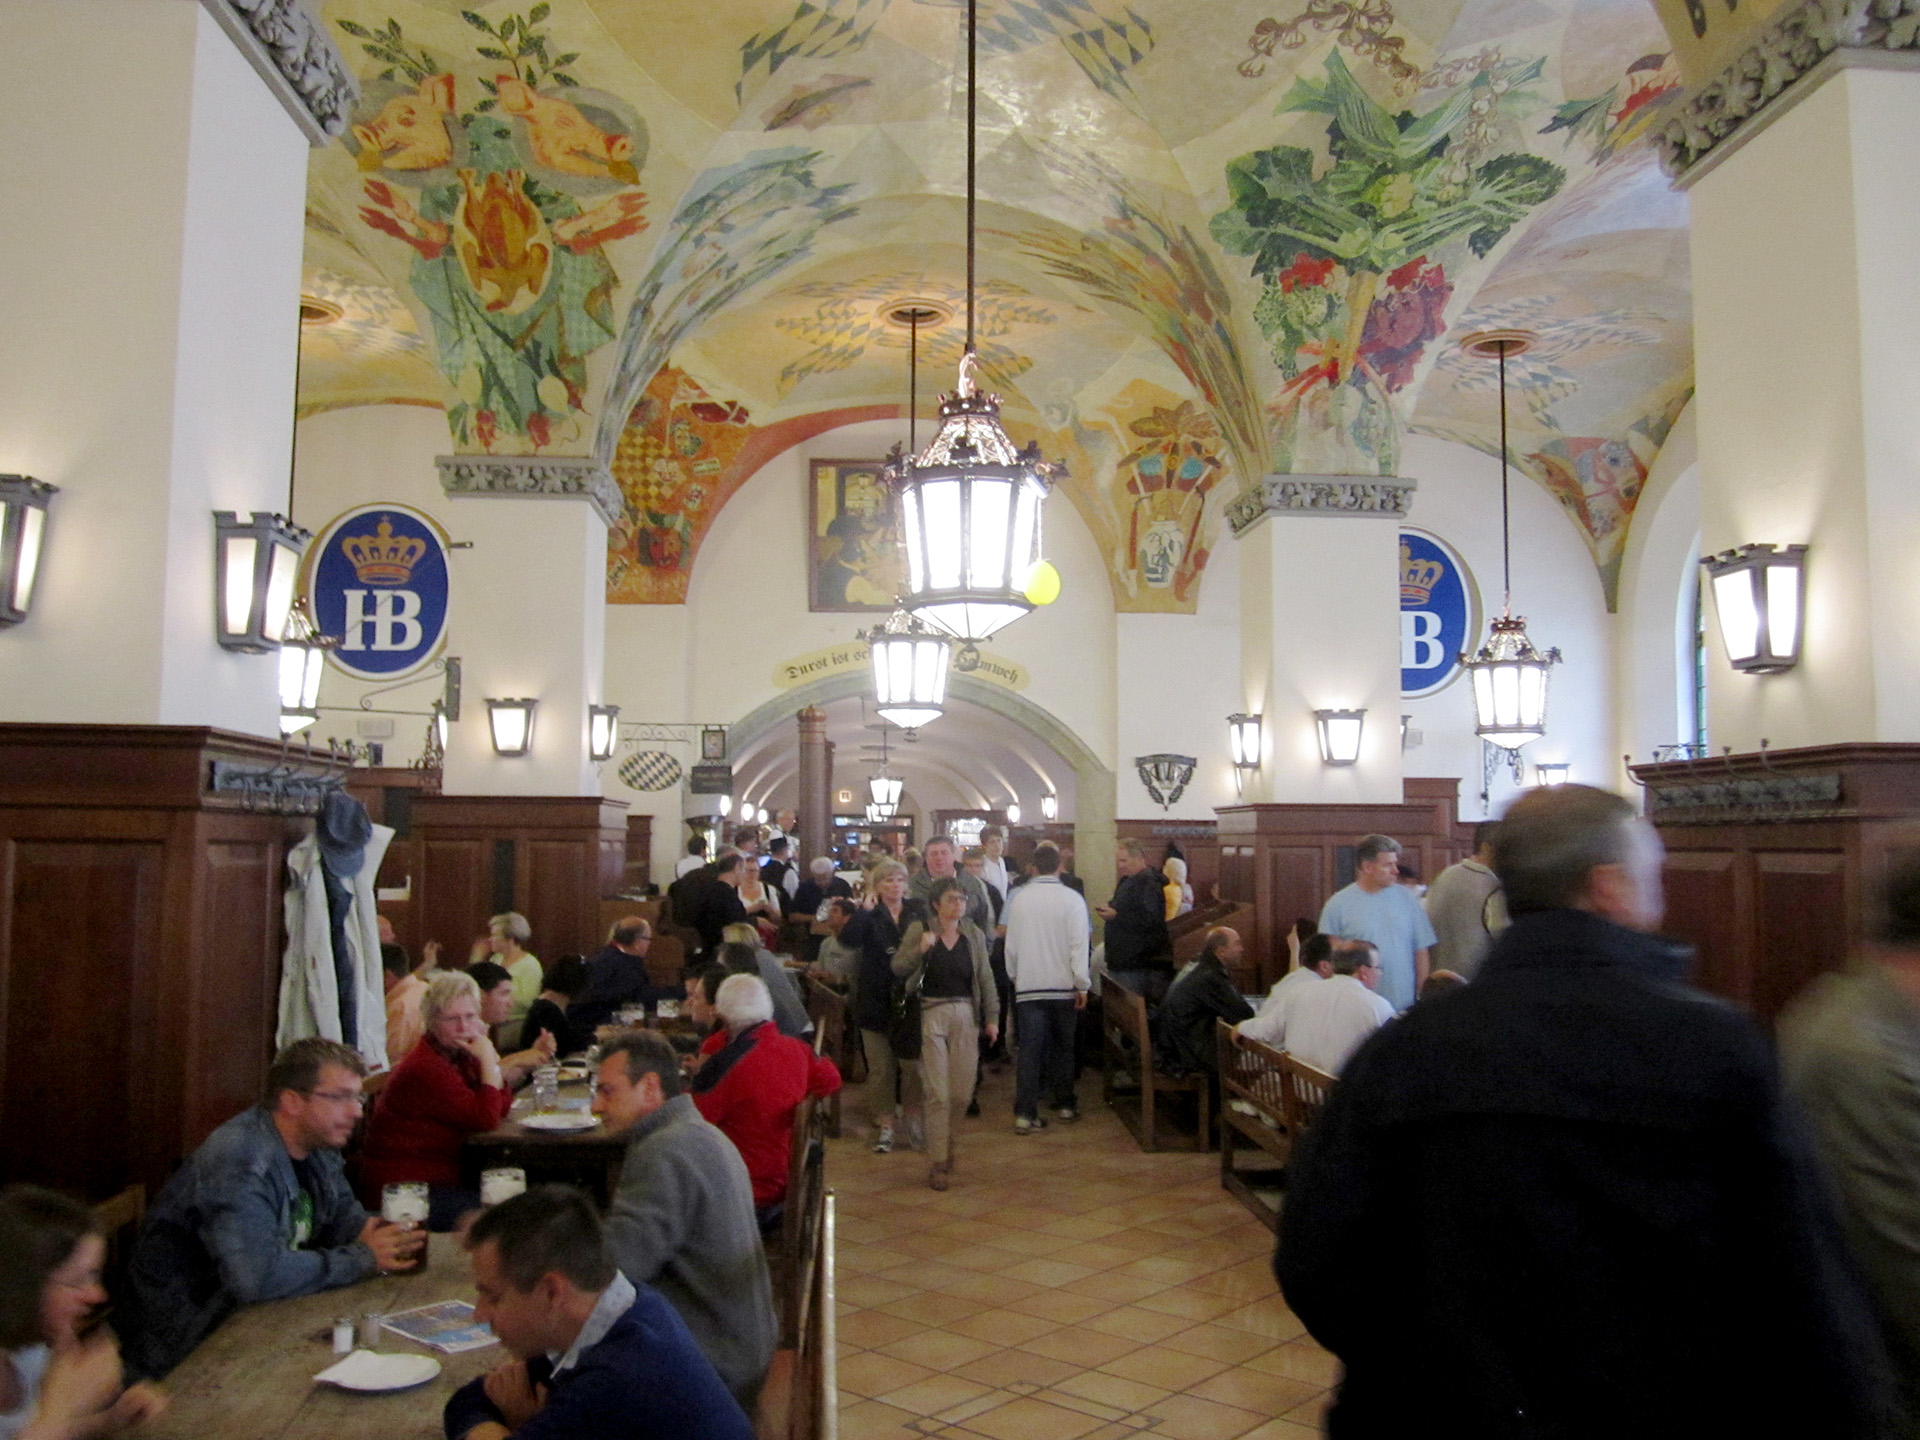 Inside the Hofbräuhaus in München.